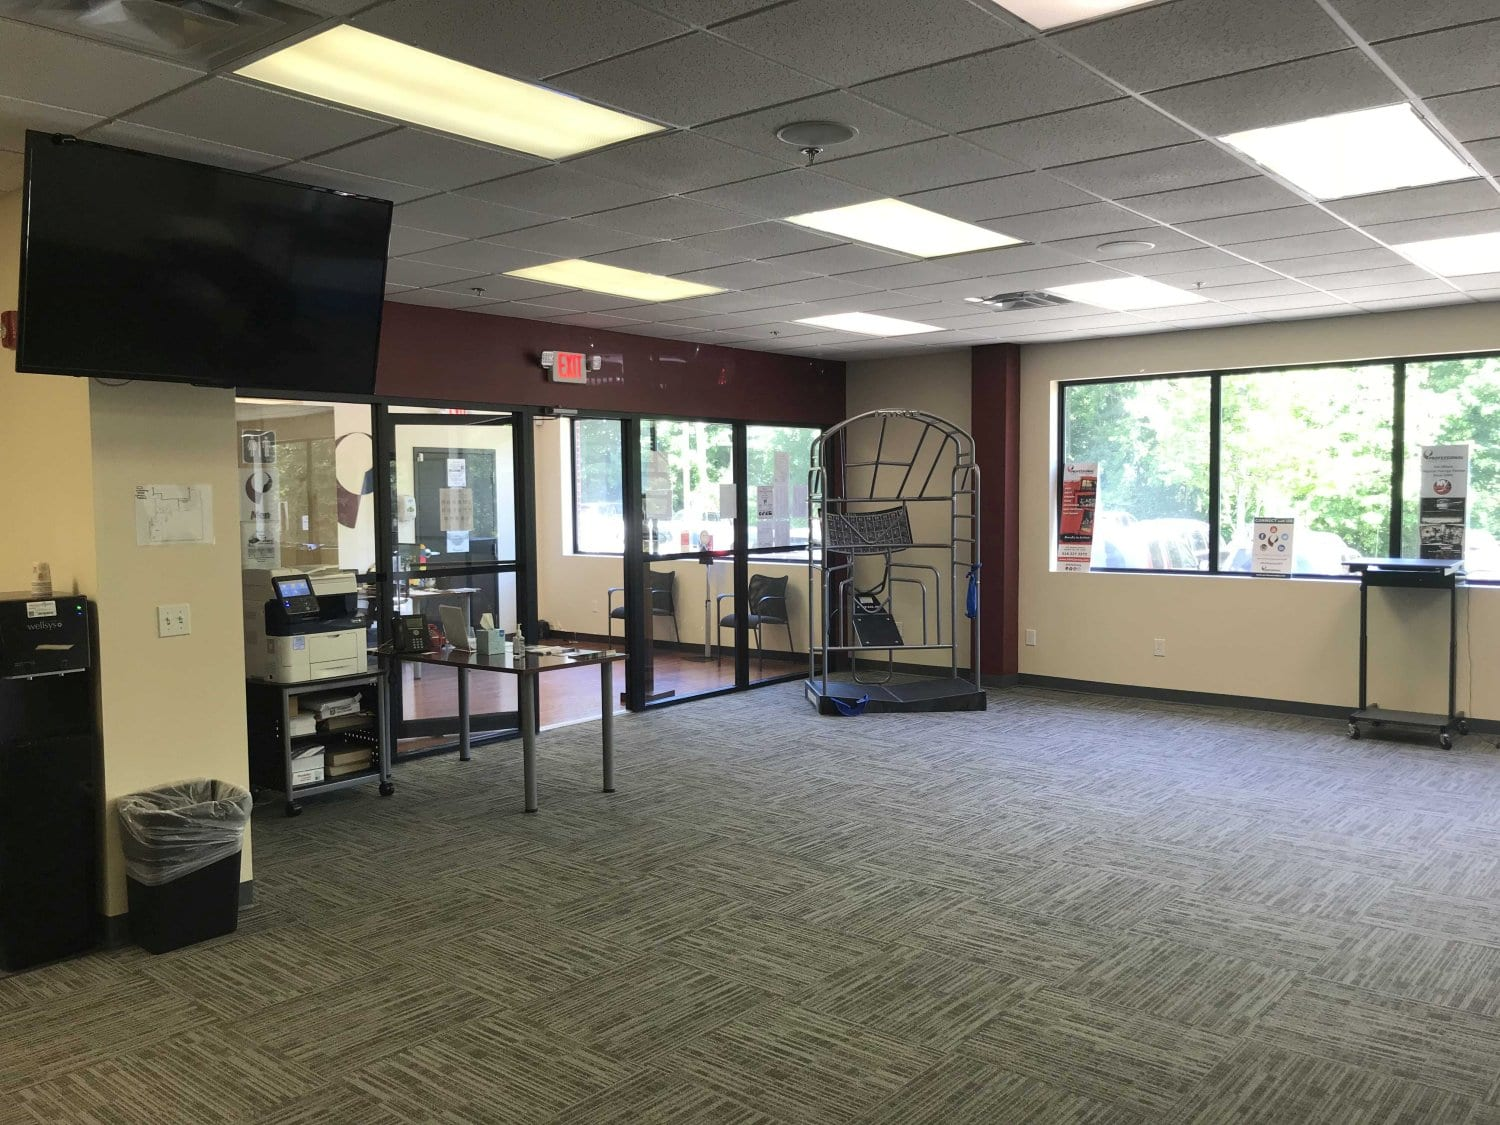 Here is an image of the interior of our Ridgefield, Connecticut physical therapy clinic.